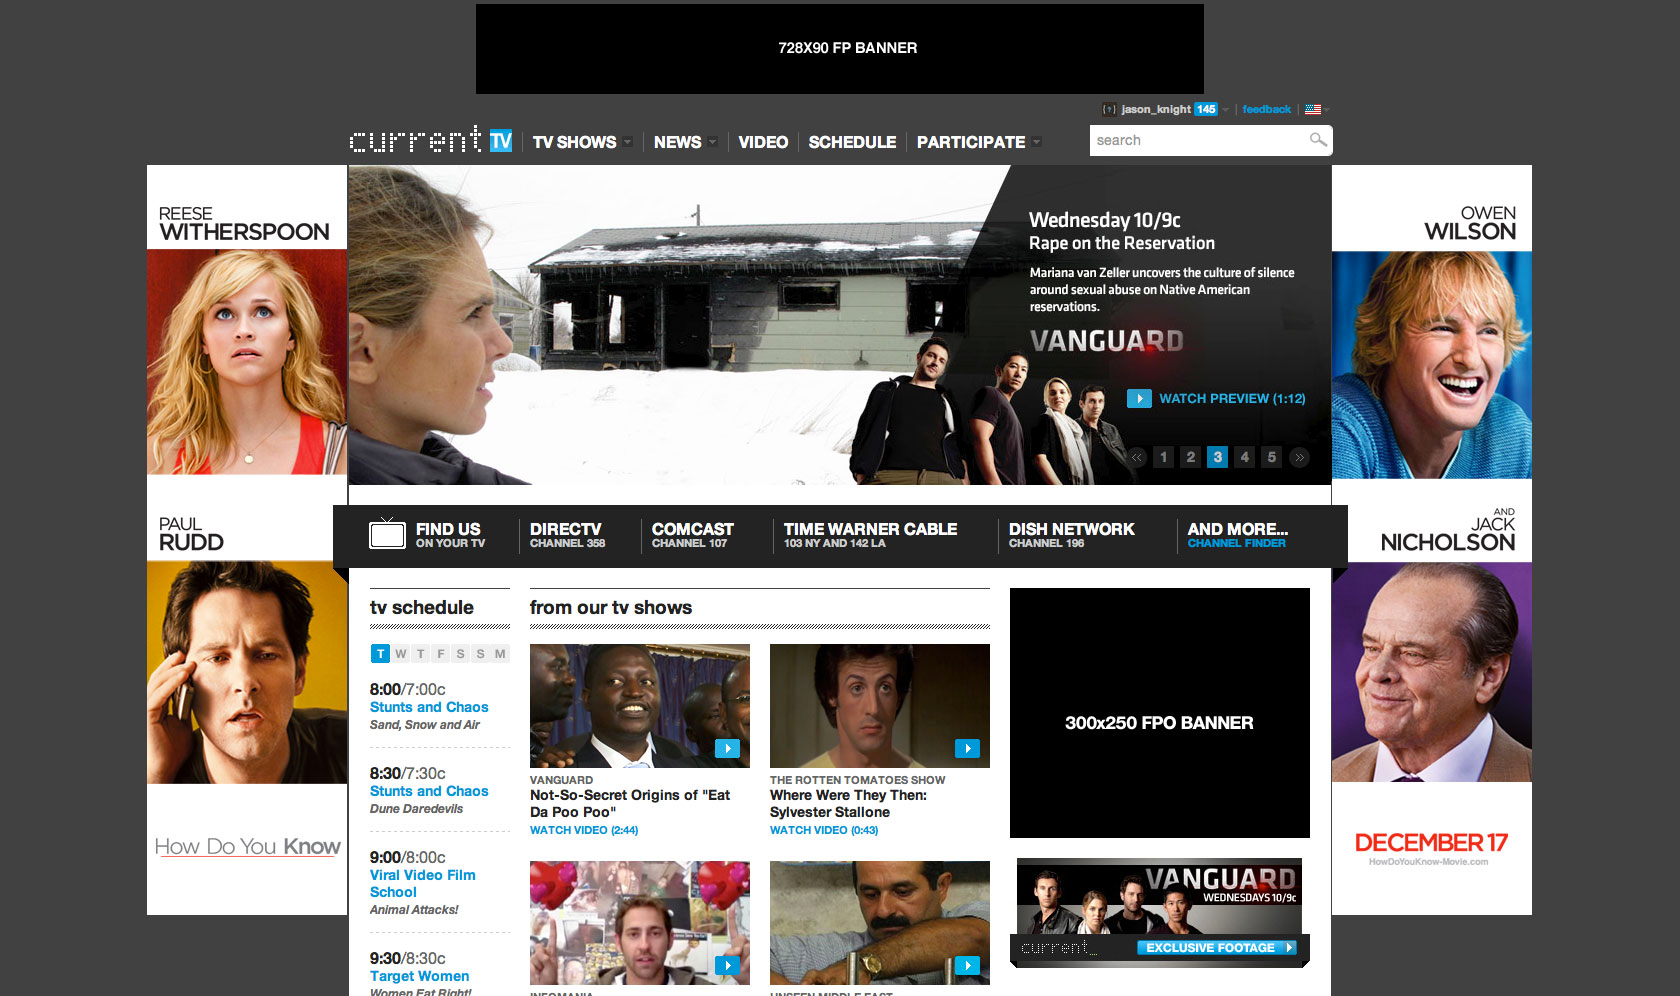 How Do You Know Homepage Takeover